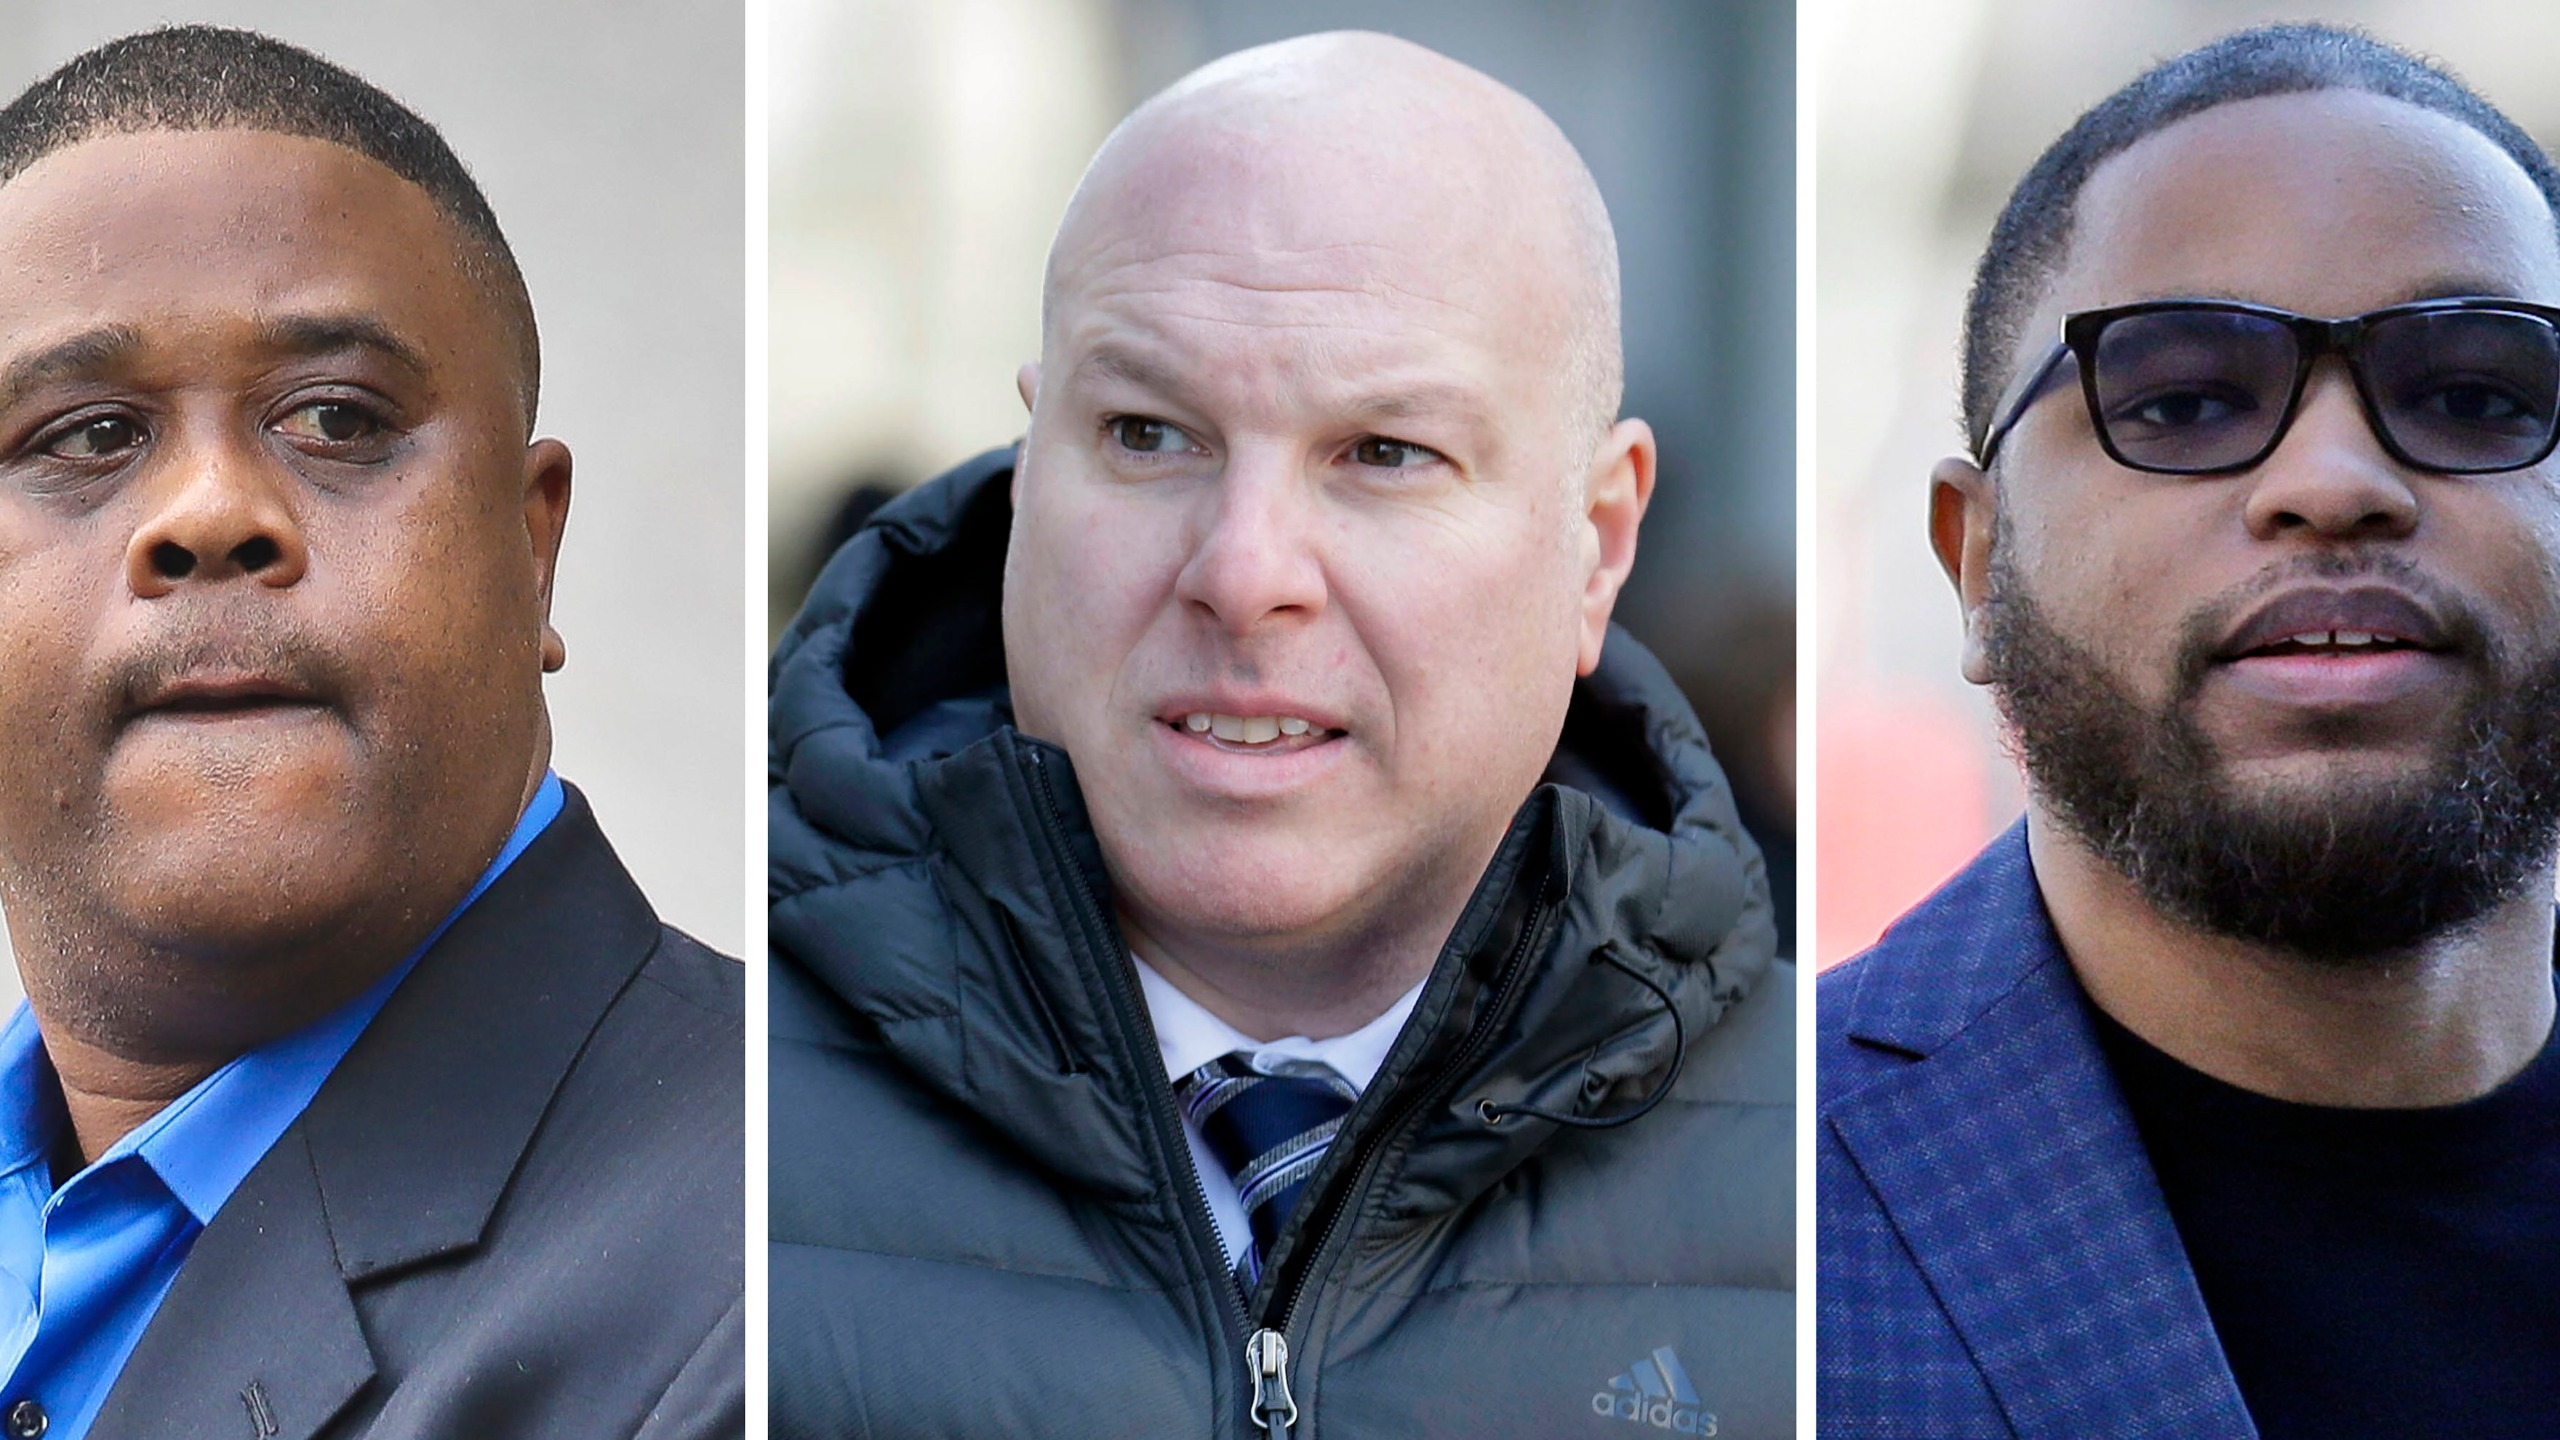 This file combo of images shows, from left, amateur basketball league director Merl Code, former Adidas executive James Gatto, and business manager Christian Dawkins. (AP Photo/File)